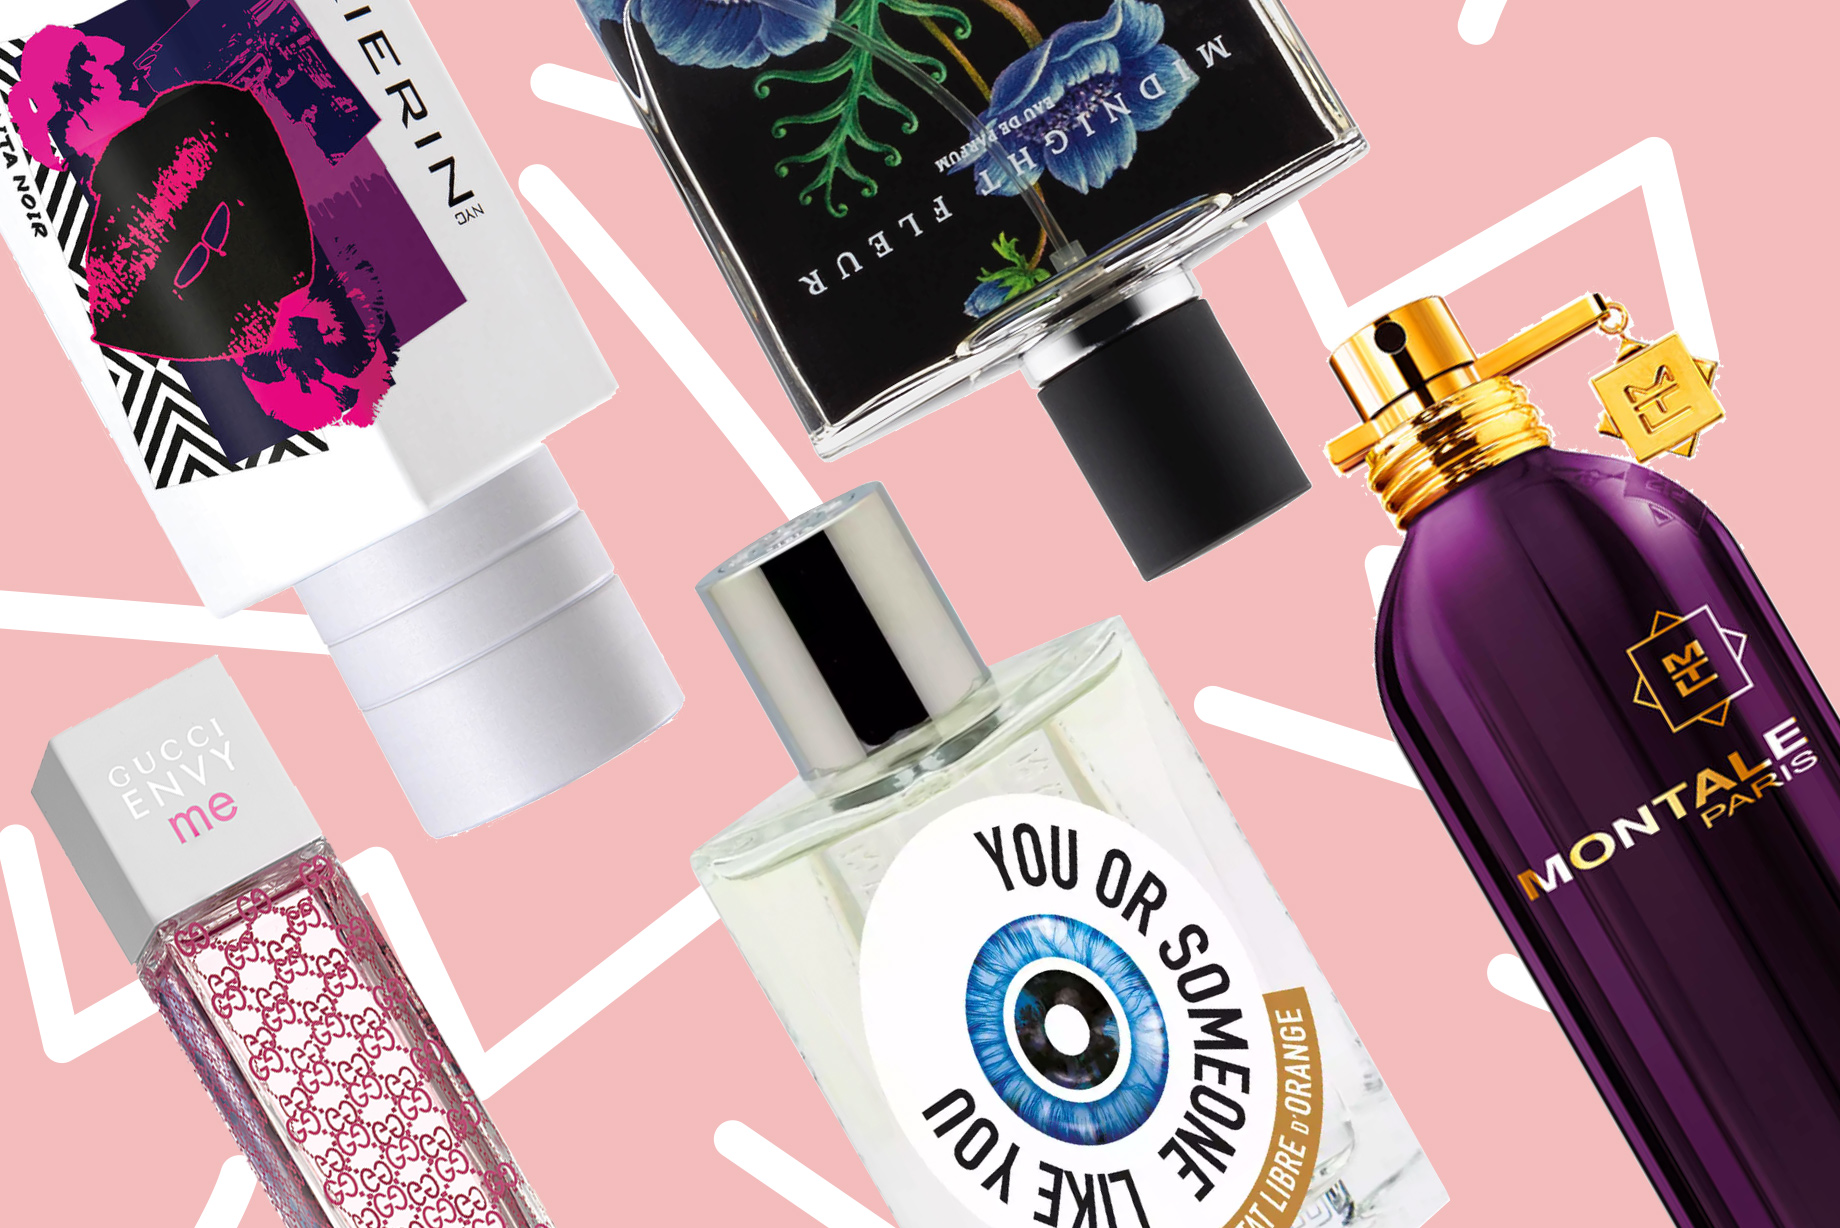 5 Fun Perfumes to Get You Friday Night Ready